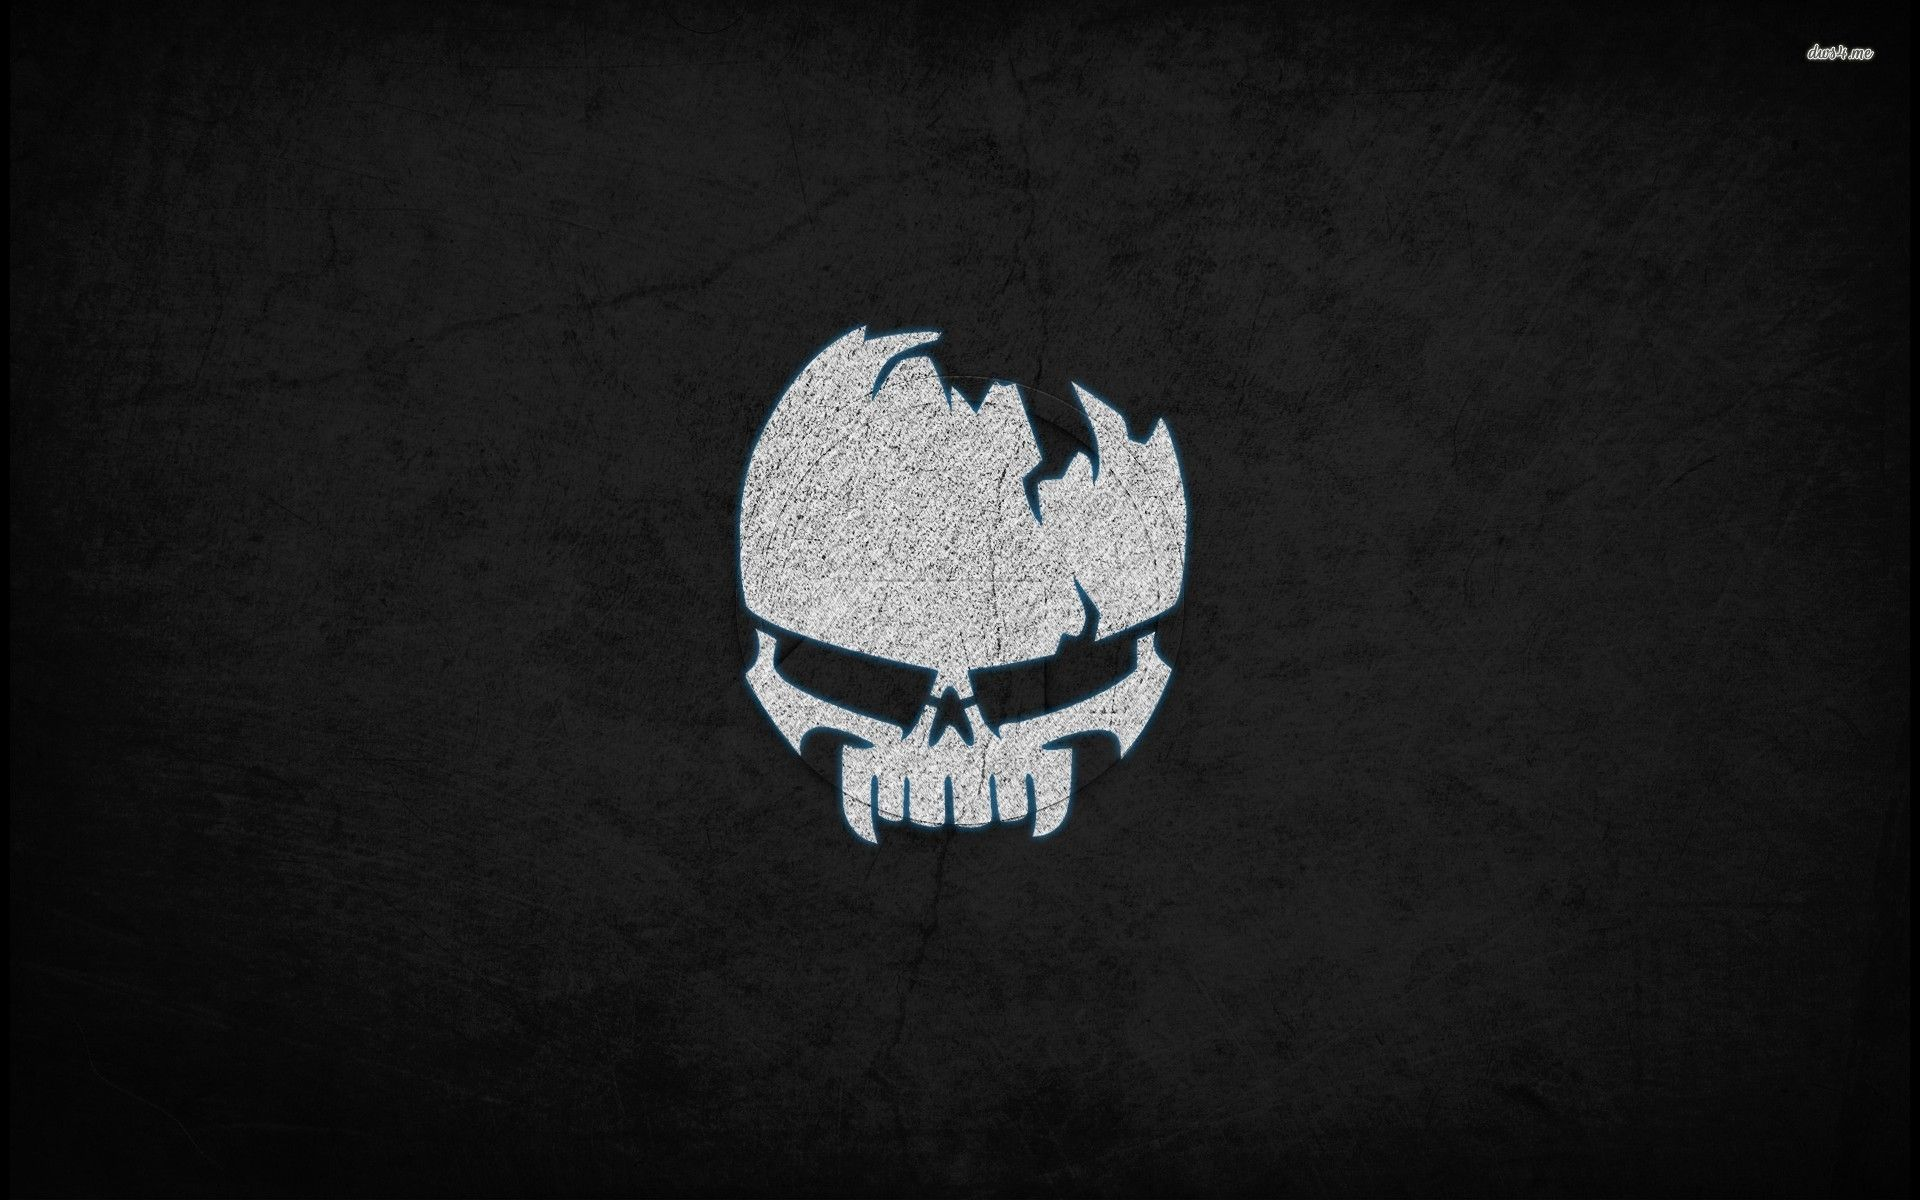 Vampire Skull Wallpapers Top Free Vampire Skull Backgrounds